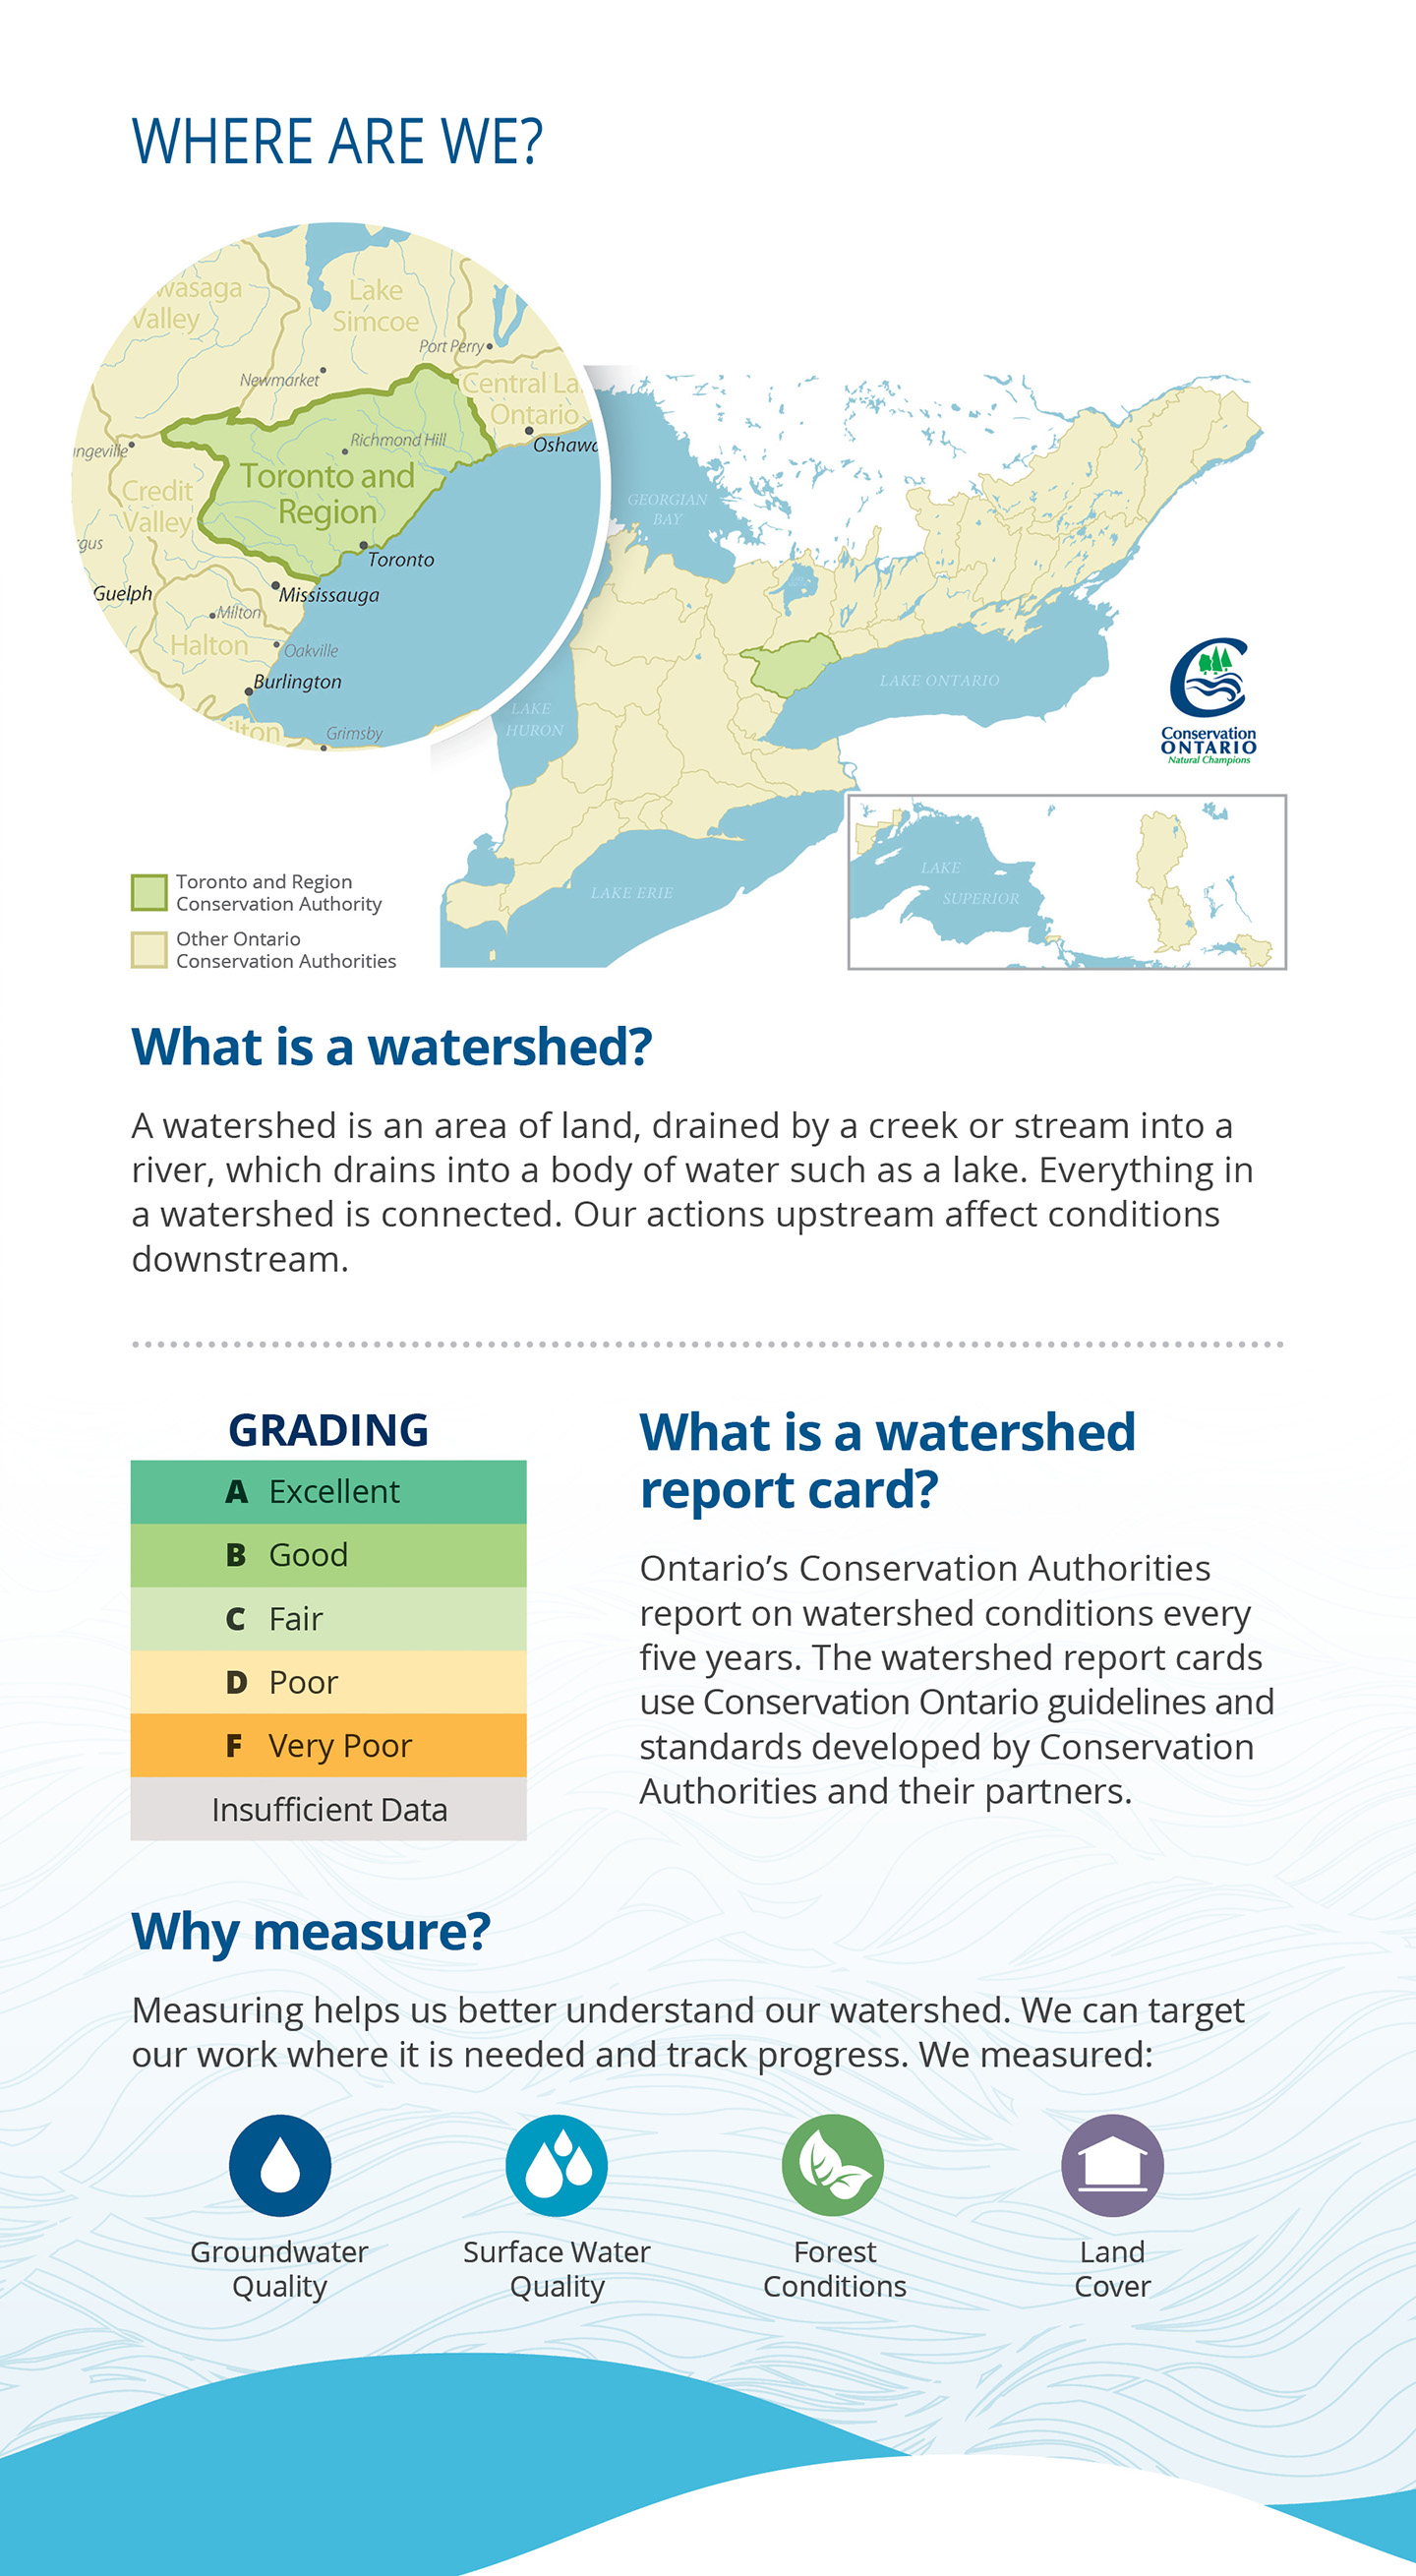 introductory panel of Etobicoke Creek watershed report card